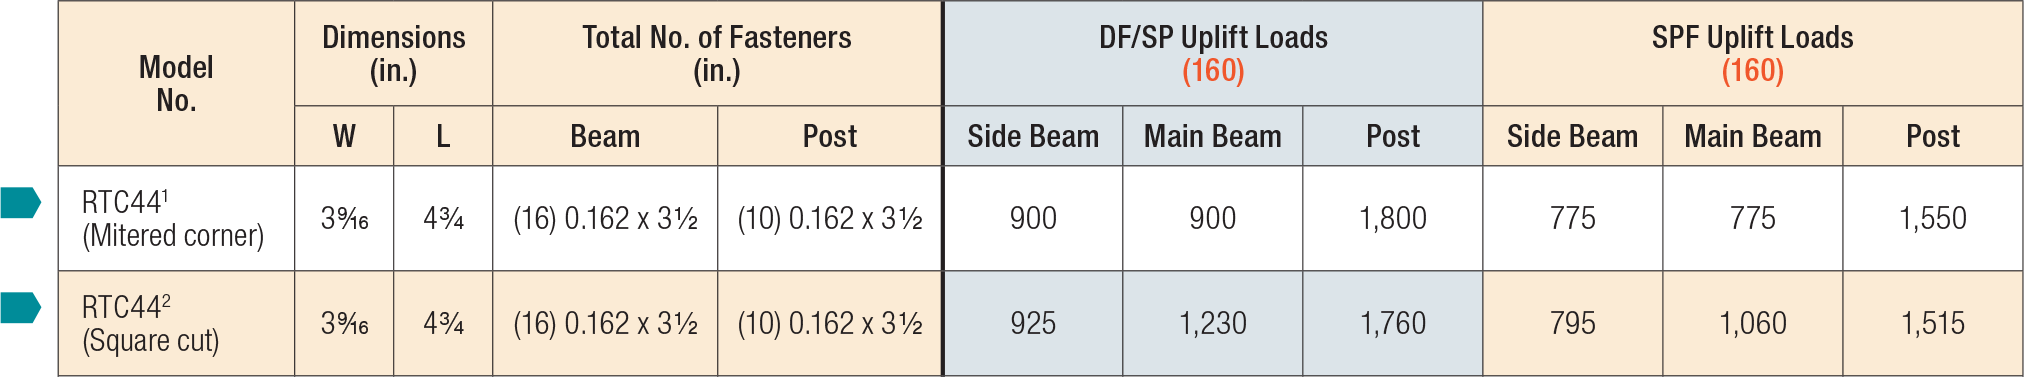 AC/LPCZ/LCE/RTC Post Caps Load Table